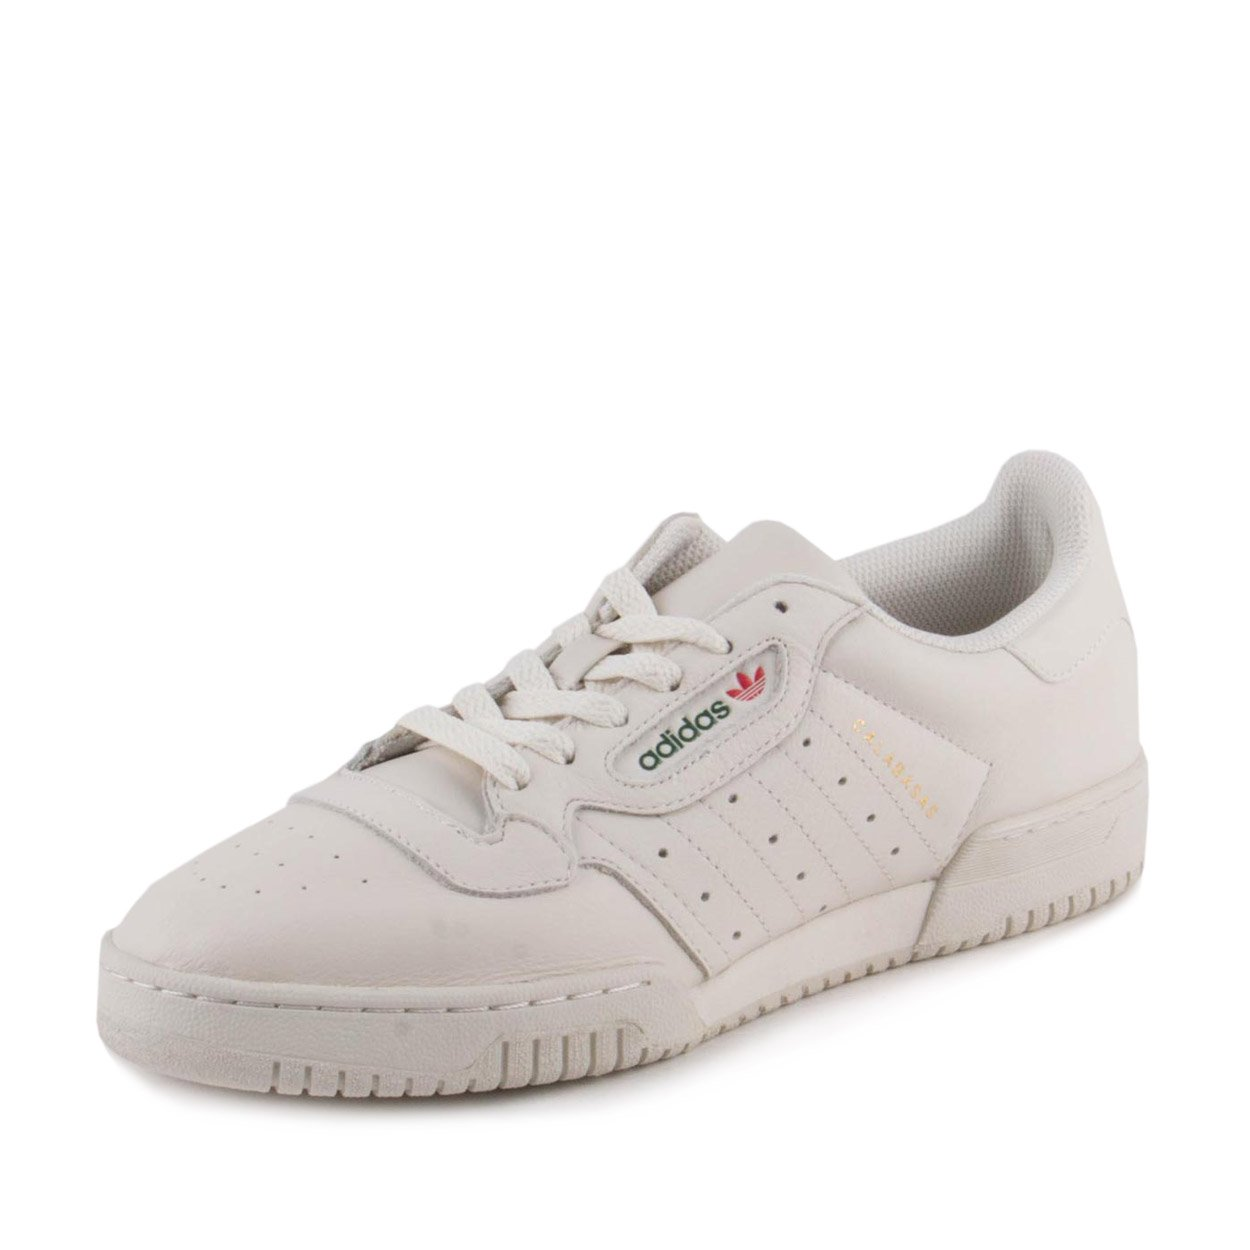 3d1d8bbae Galleon - Adidas Mens Yeezy Powerphase Calabasas Cream White Leather Size 8